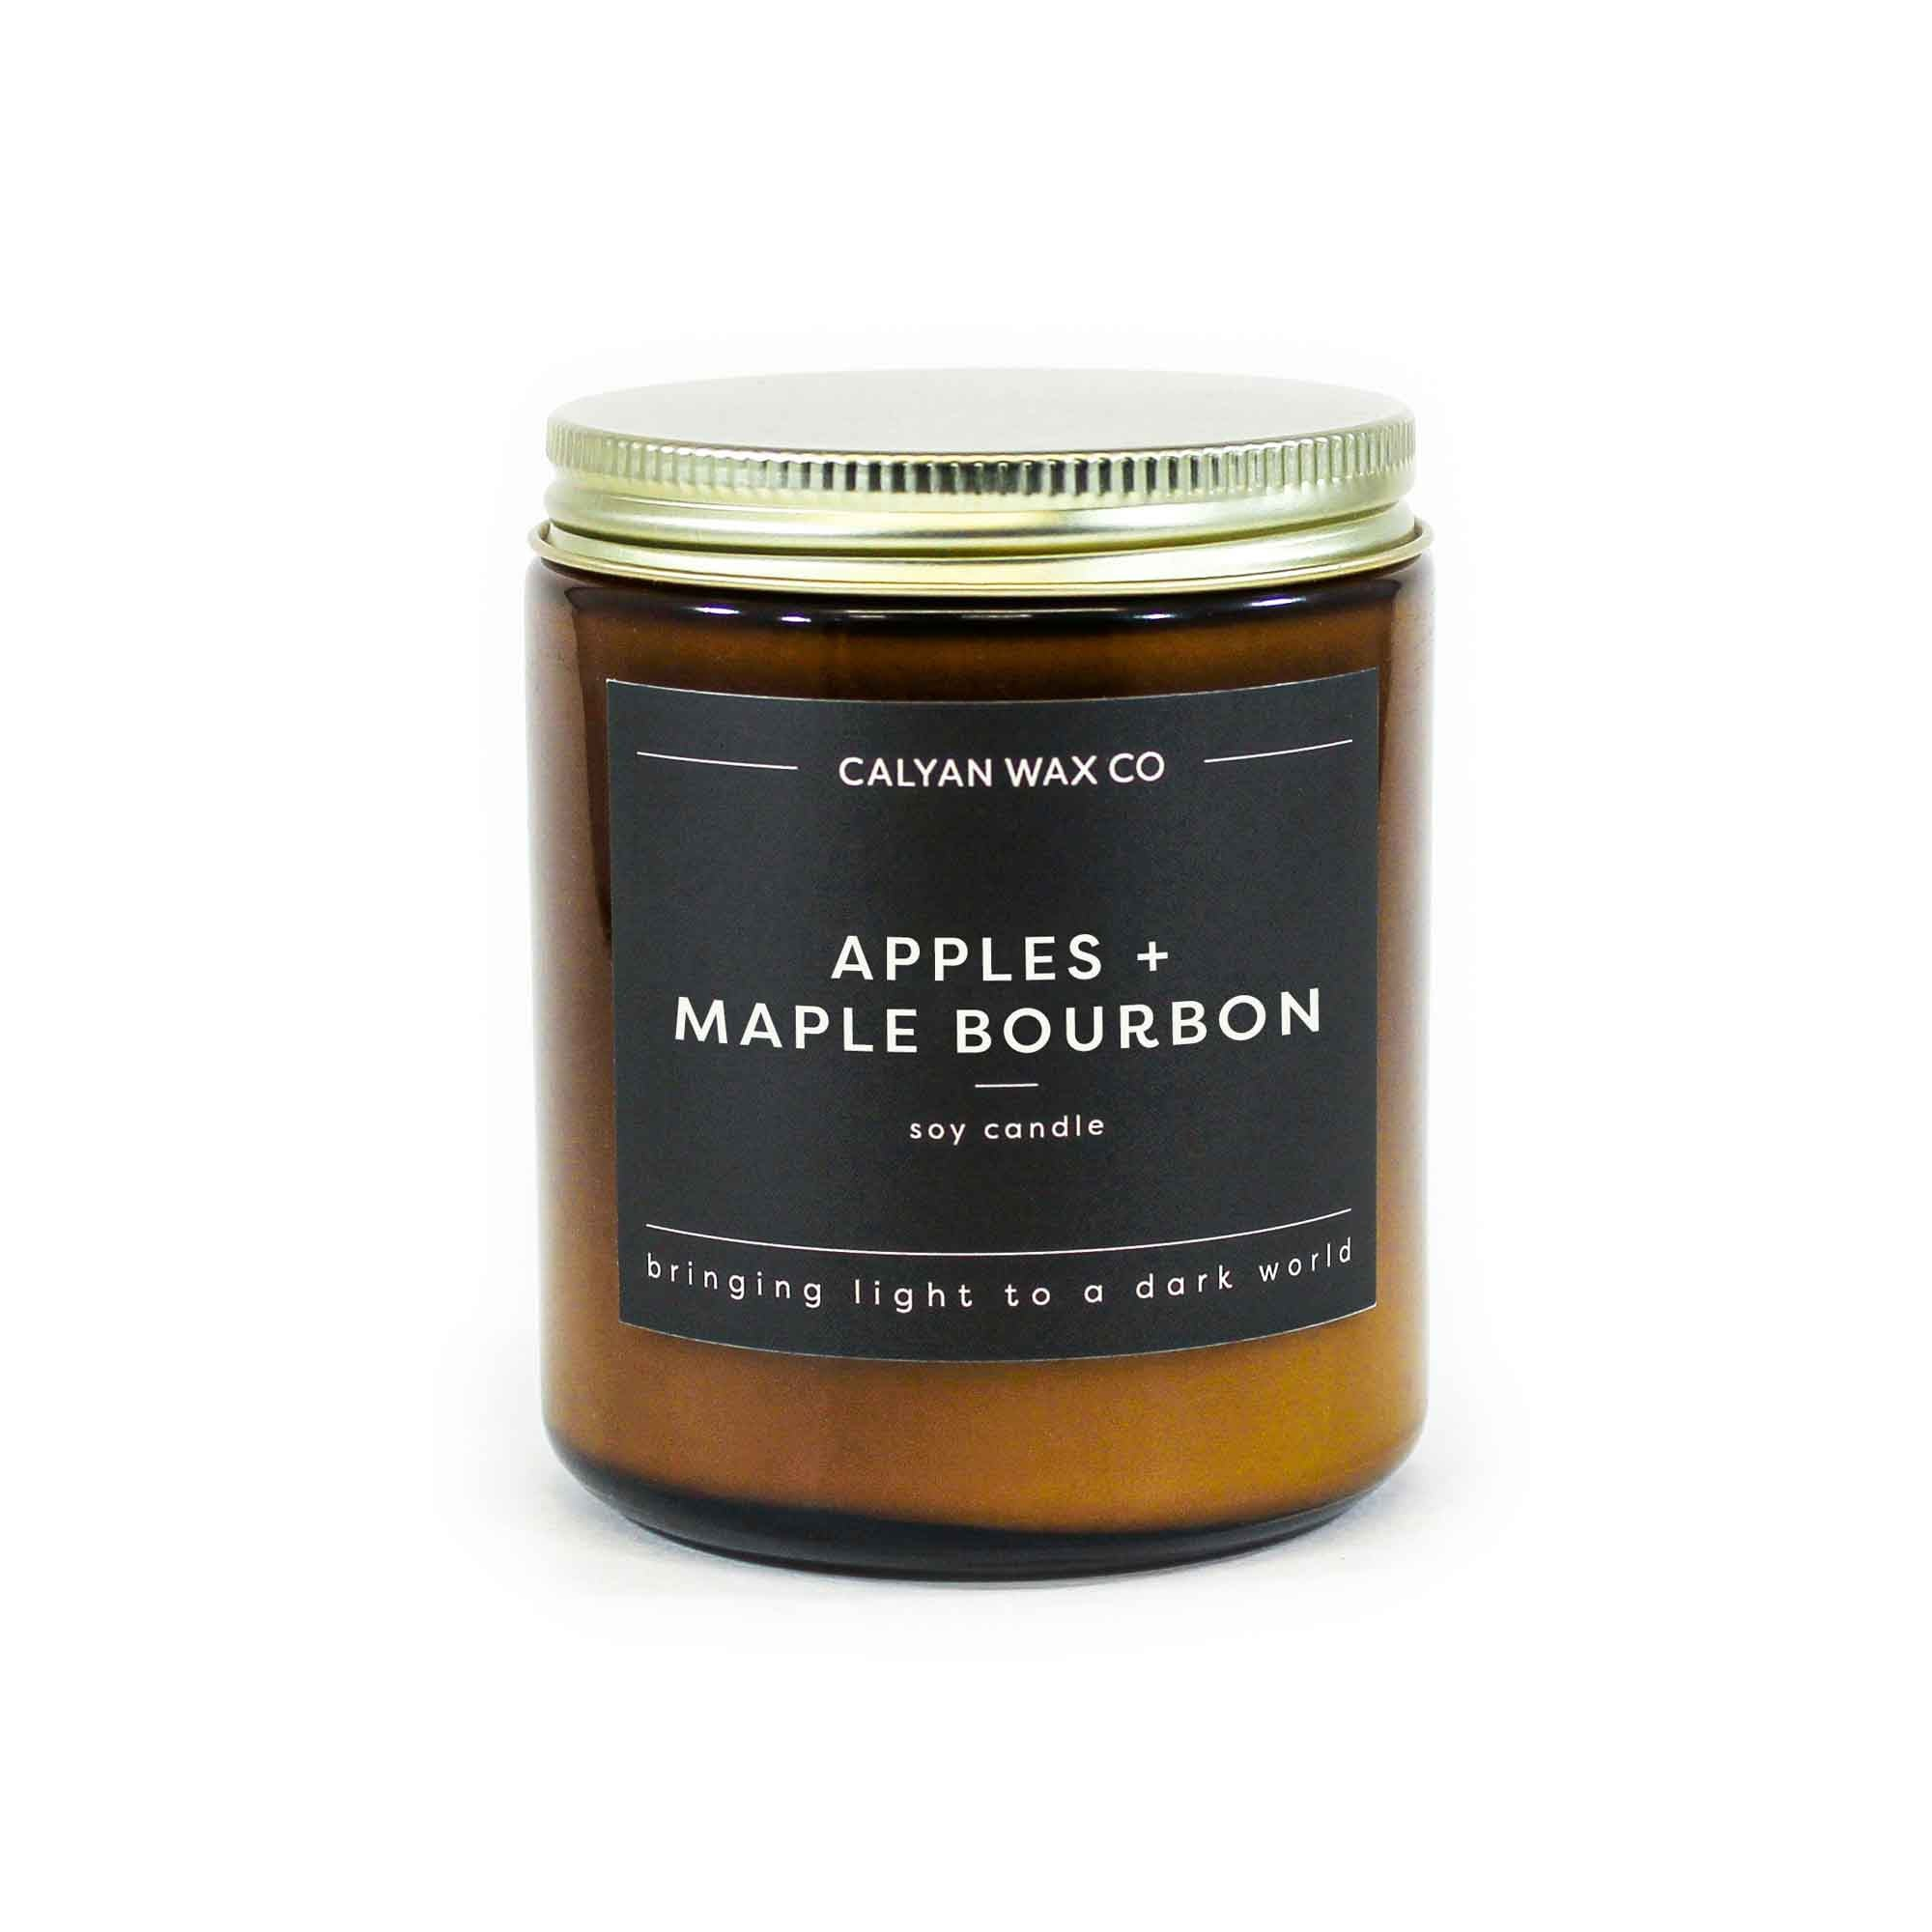 Apples + Maple Bourbon Amber Jar